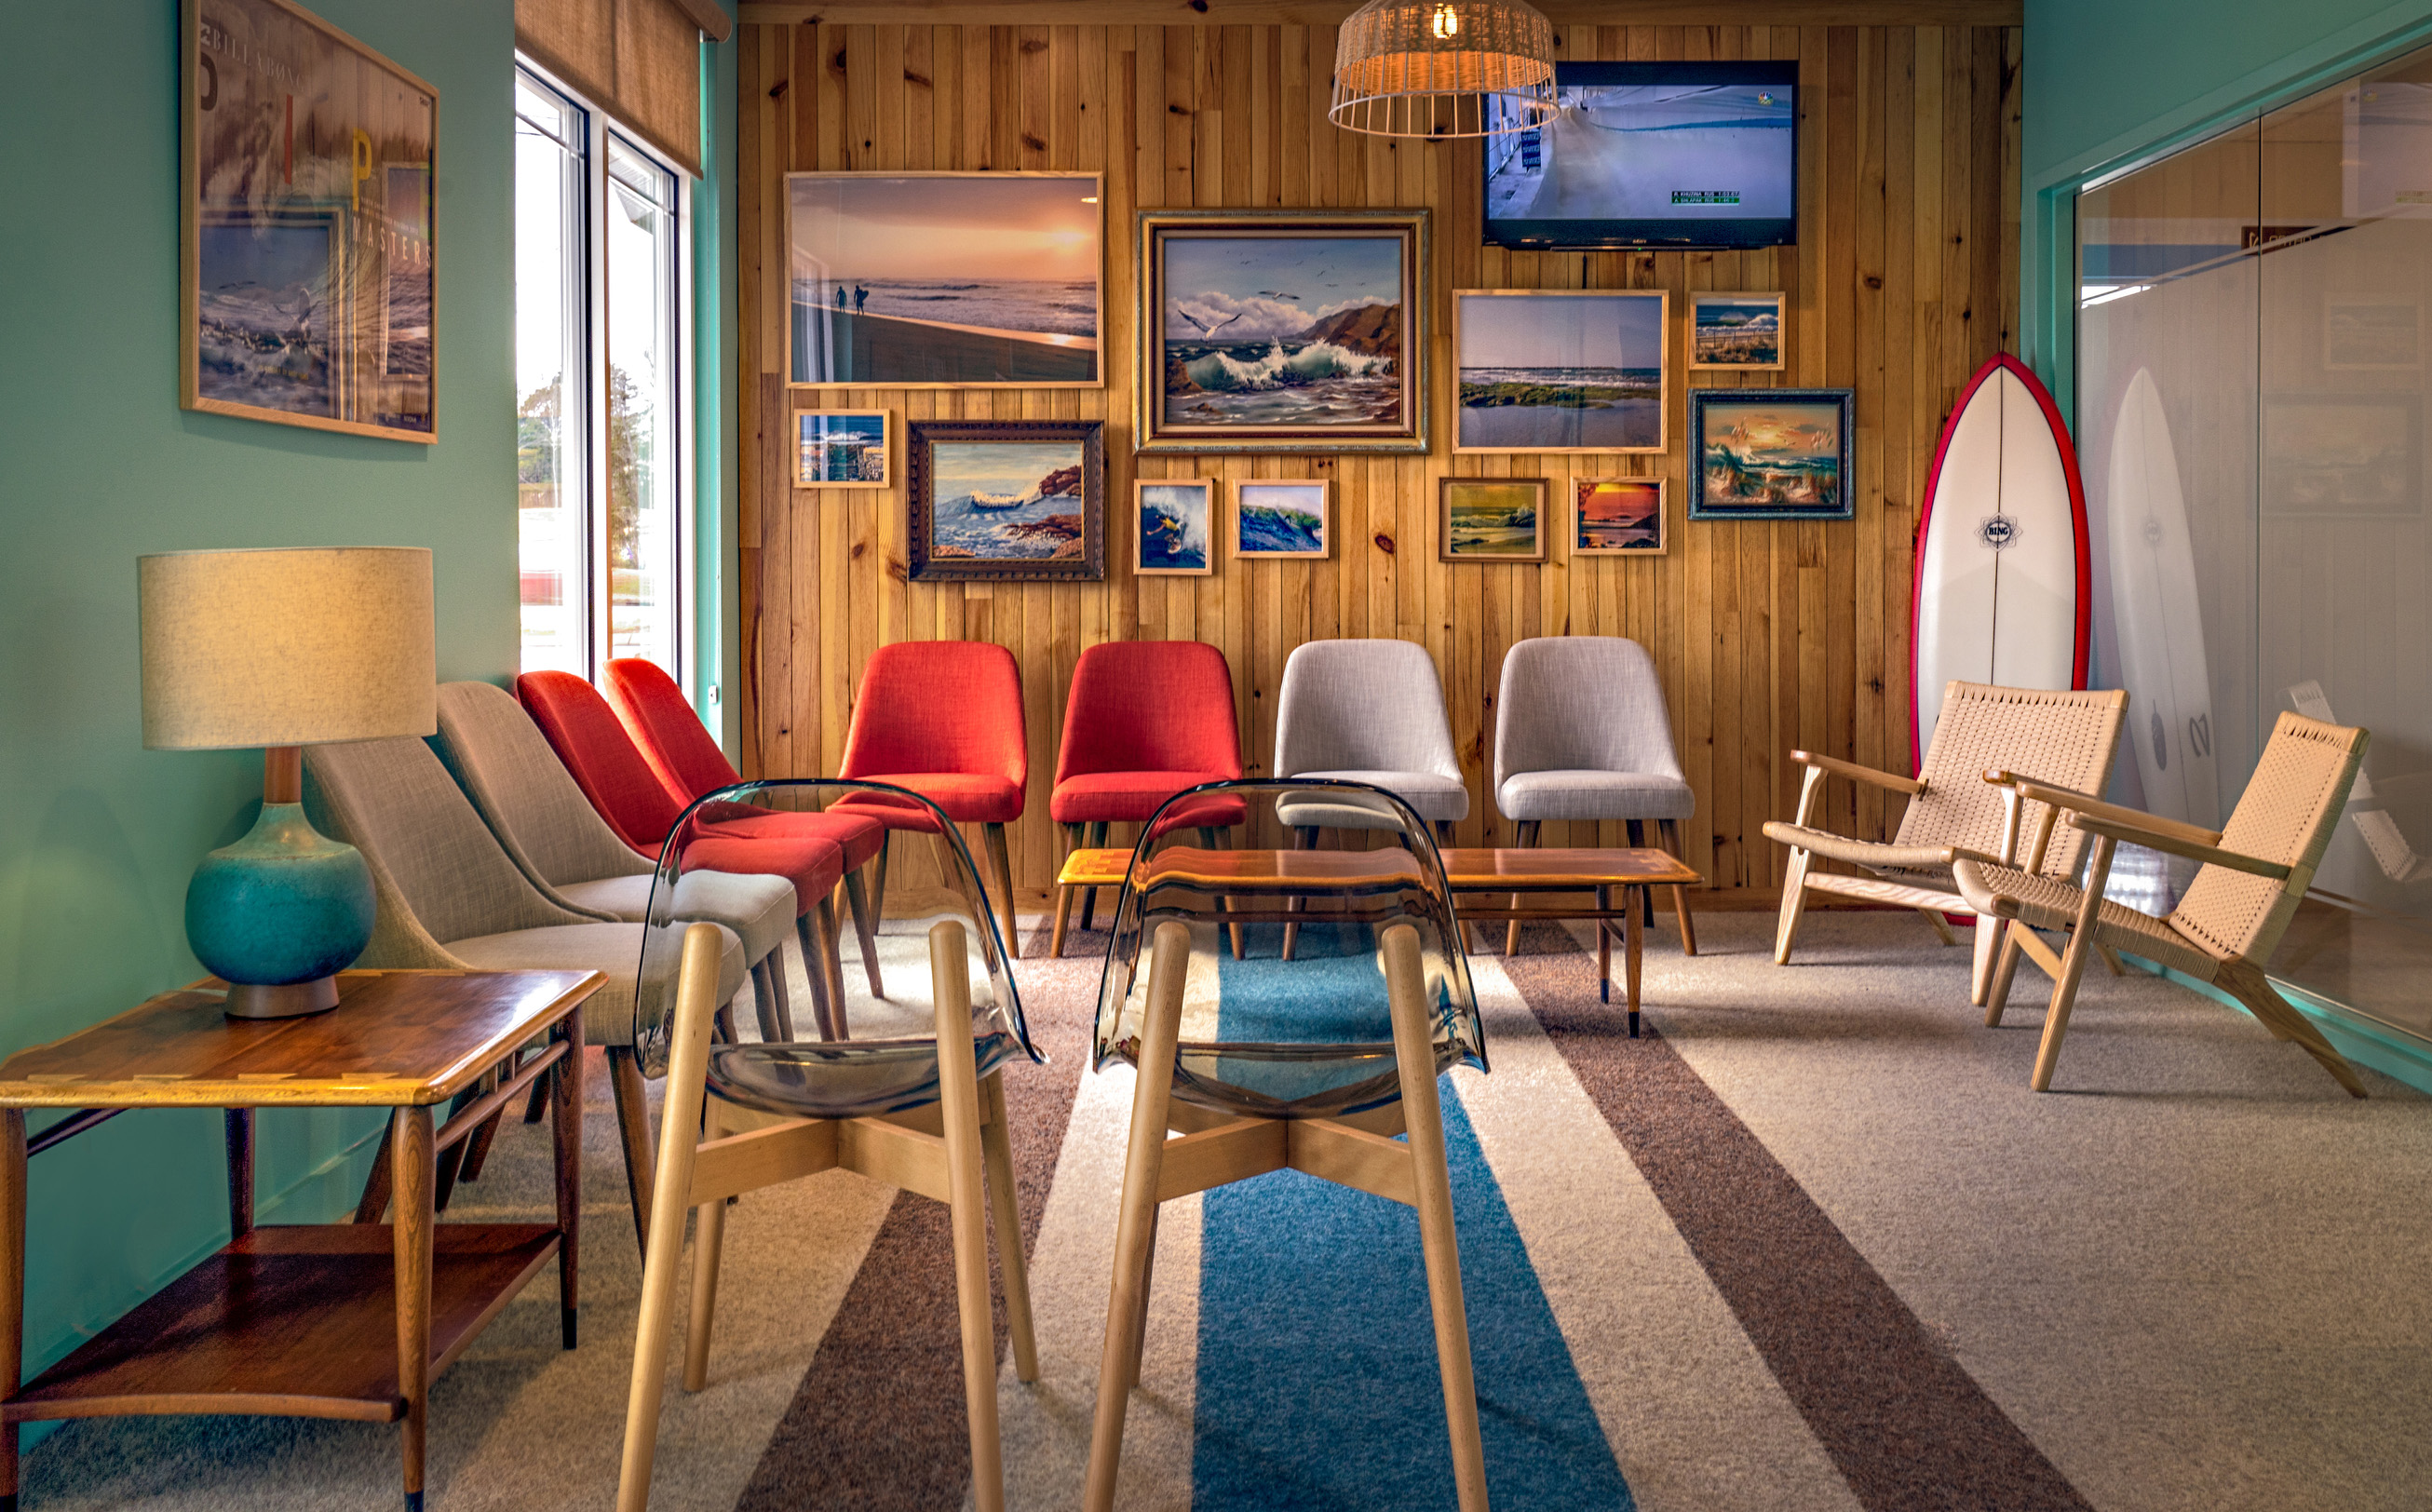 MG2 Partners With Smith Dental To Create Innovative Patient Experience Inspired By Surf Culture